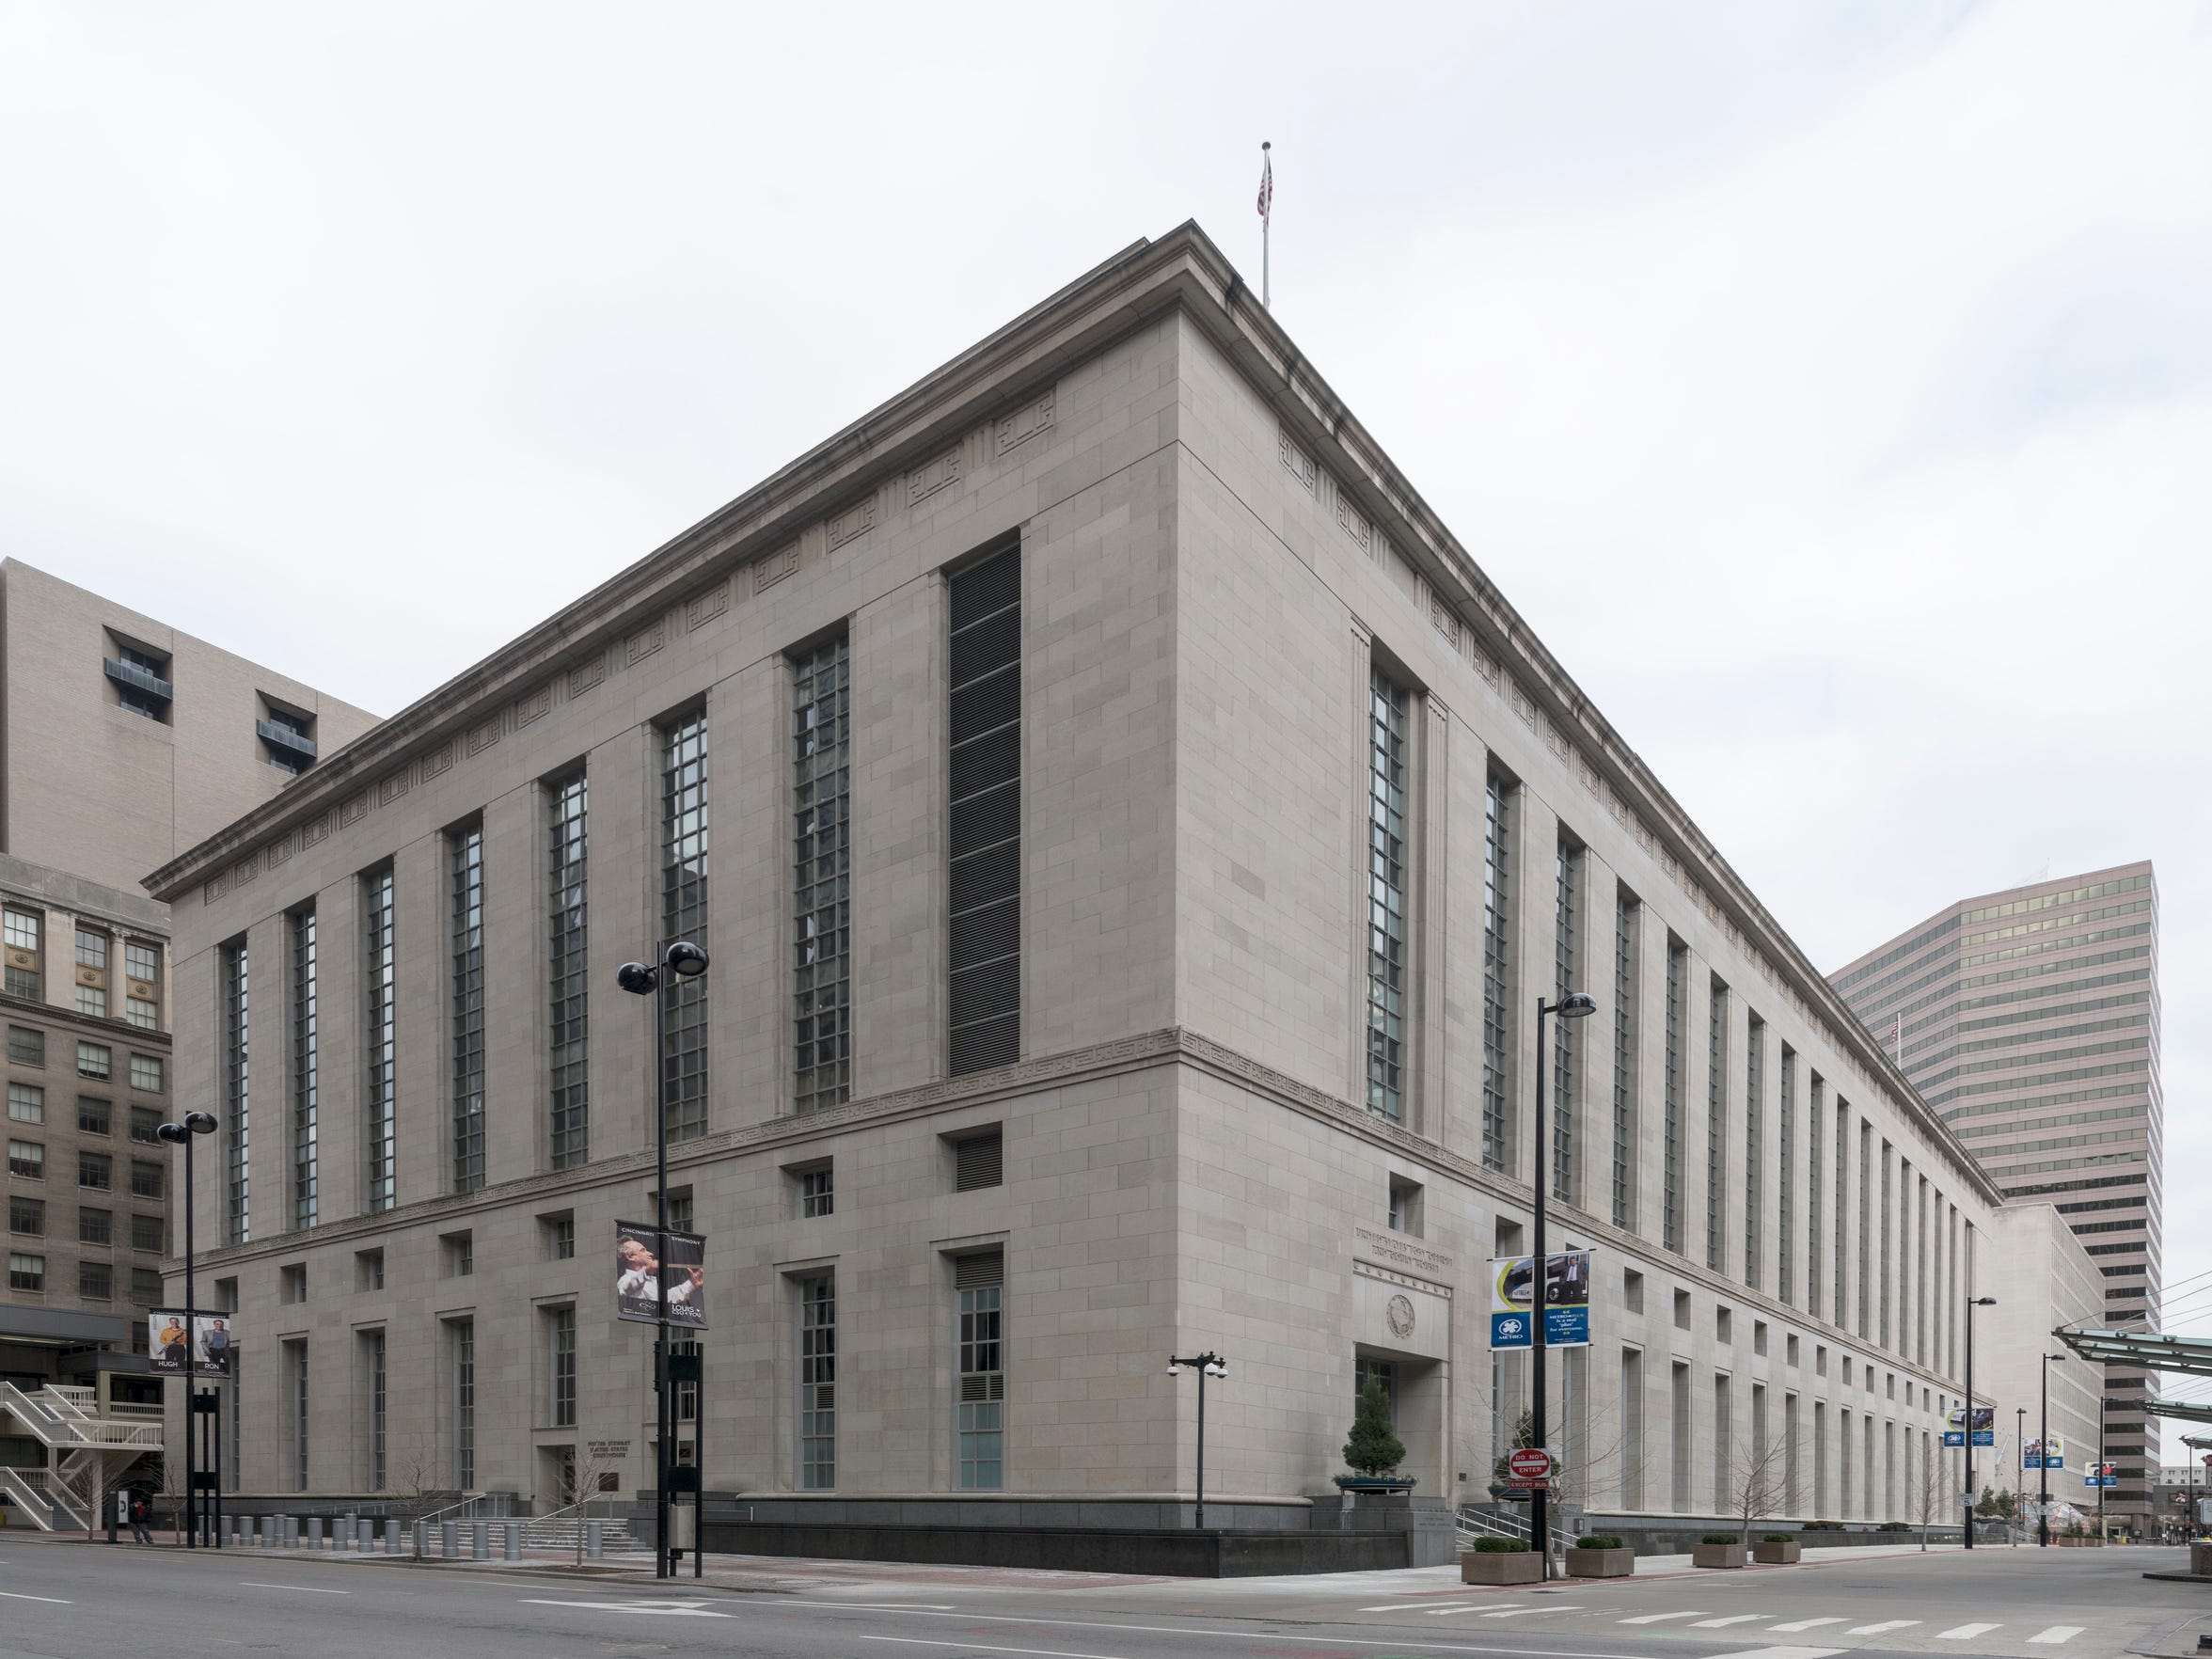 Potter Stewart Courthouse in Cincinnati, Ohio is home to the U.S. Southern District of Ohio District Court.